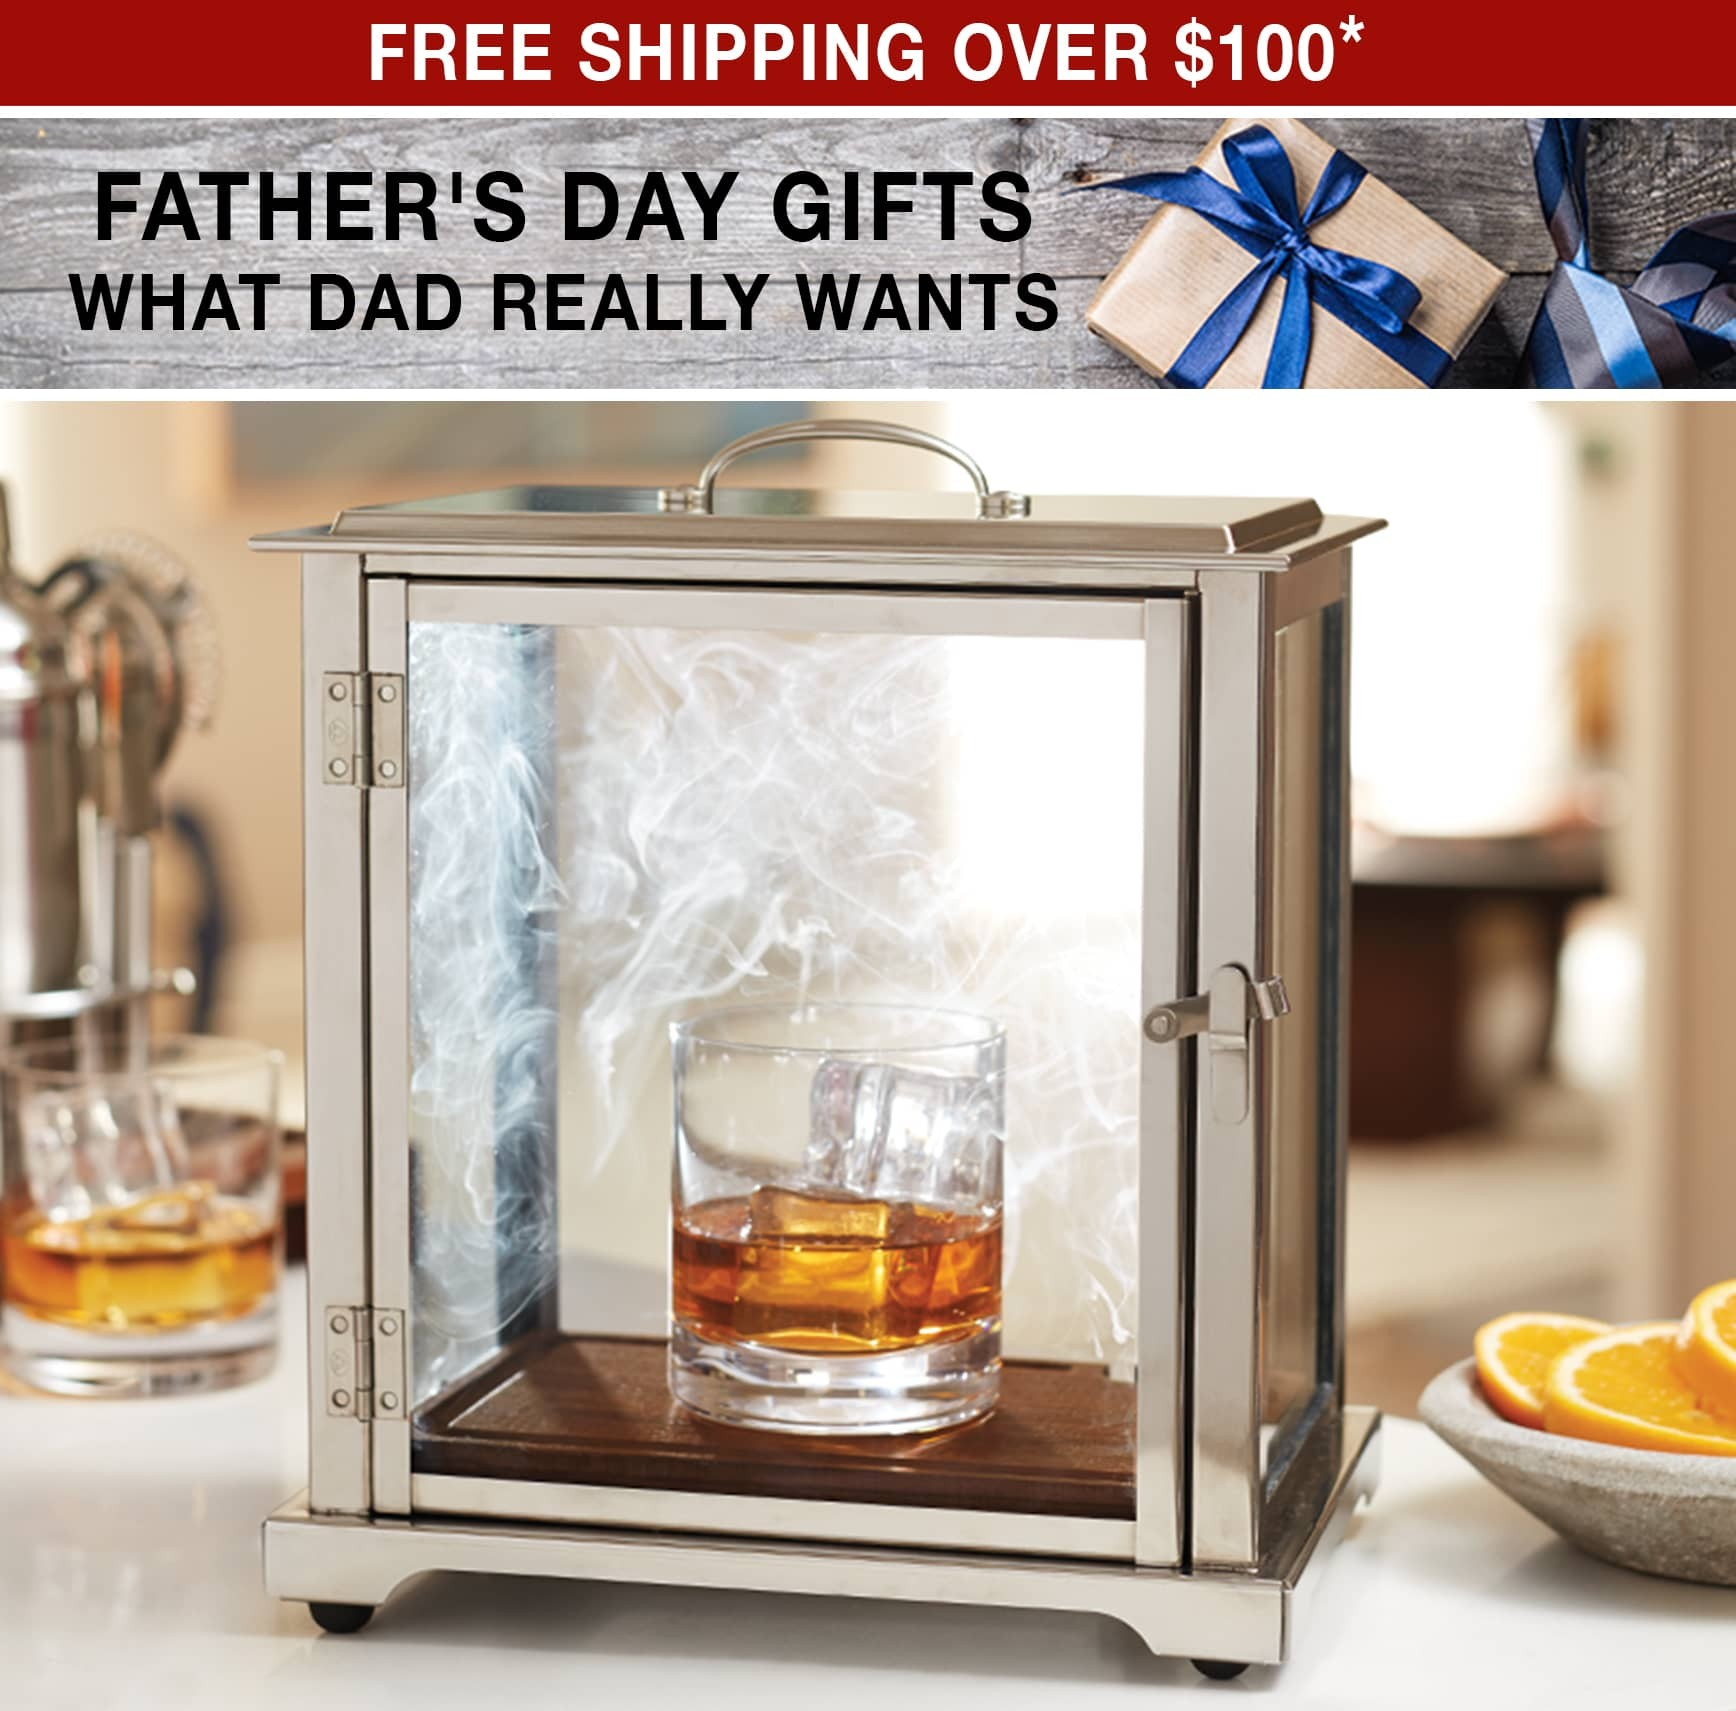 Father's Day Gifts What Dad Really Wants - Free Shipping over $100 use code FS21W